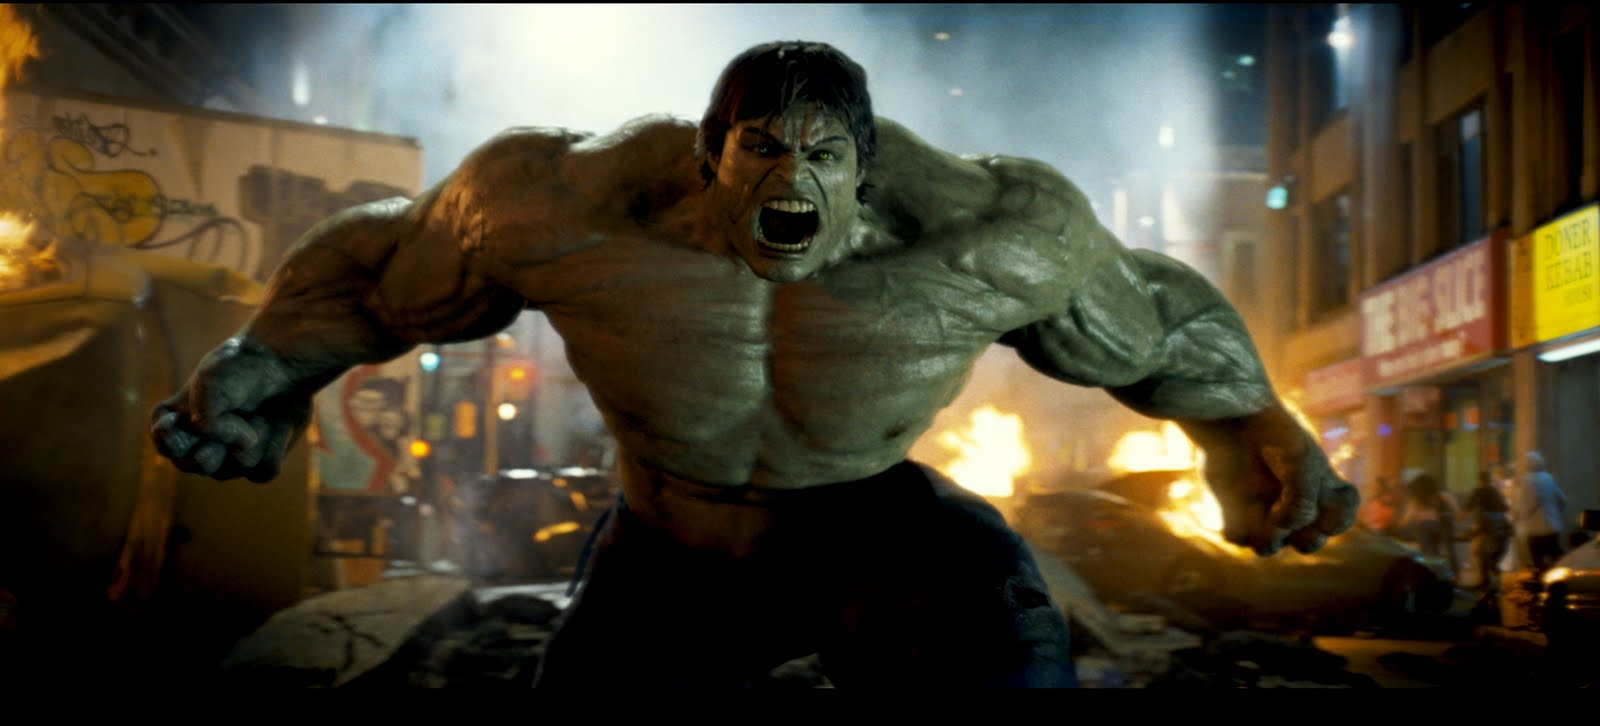 The Hulk HD Wallpapers Download Wallpapers in HD for your Desktop 1600x726